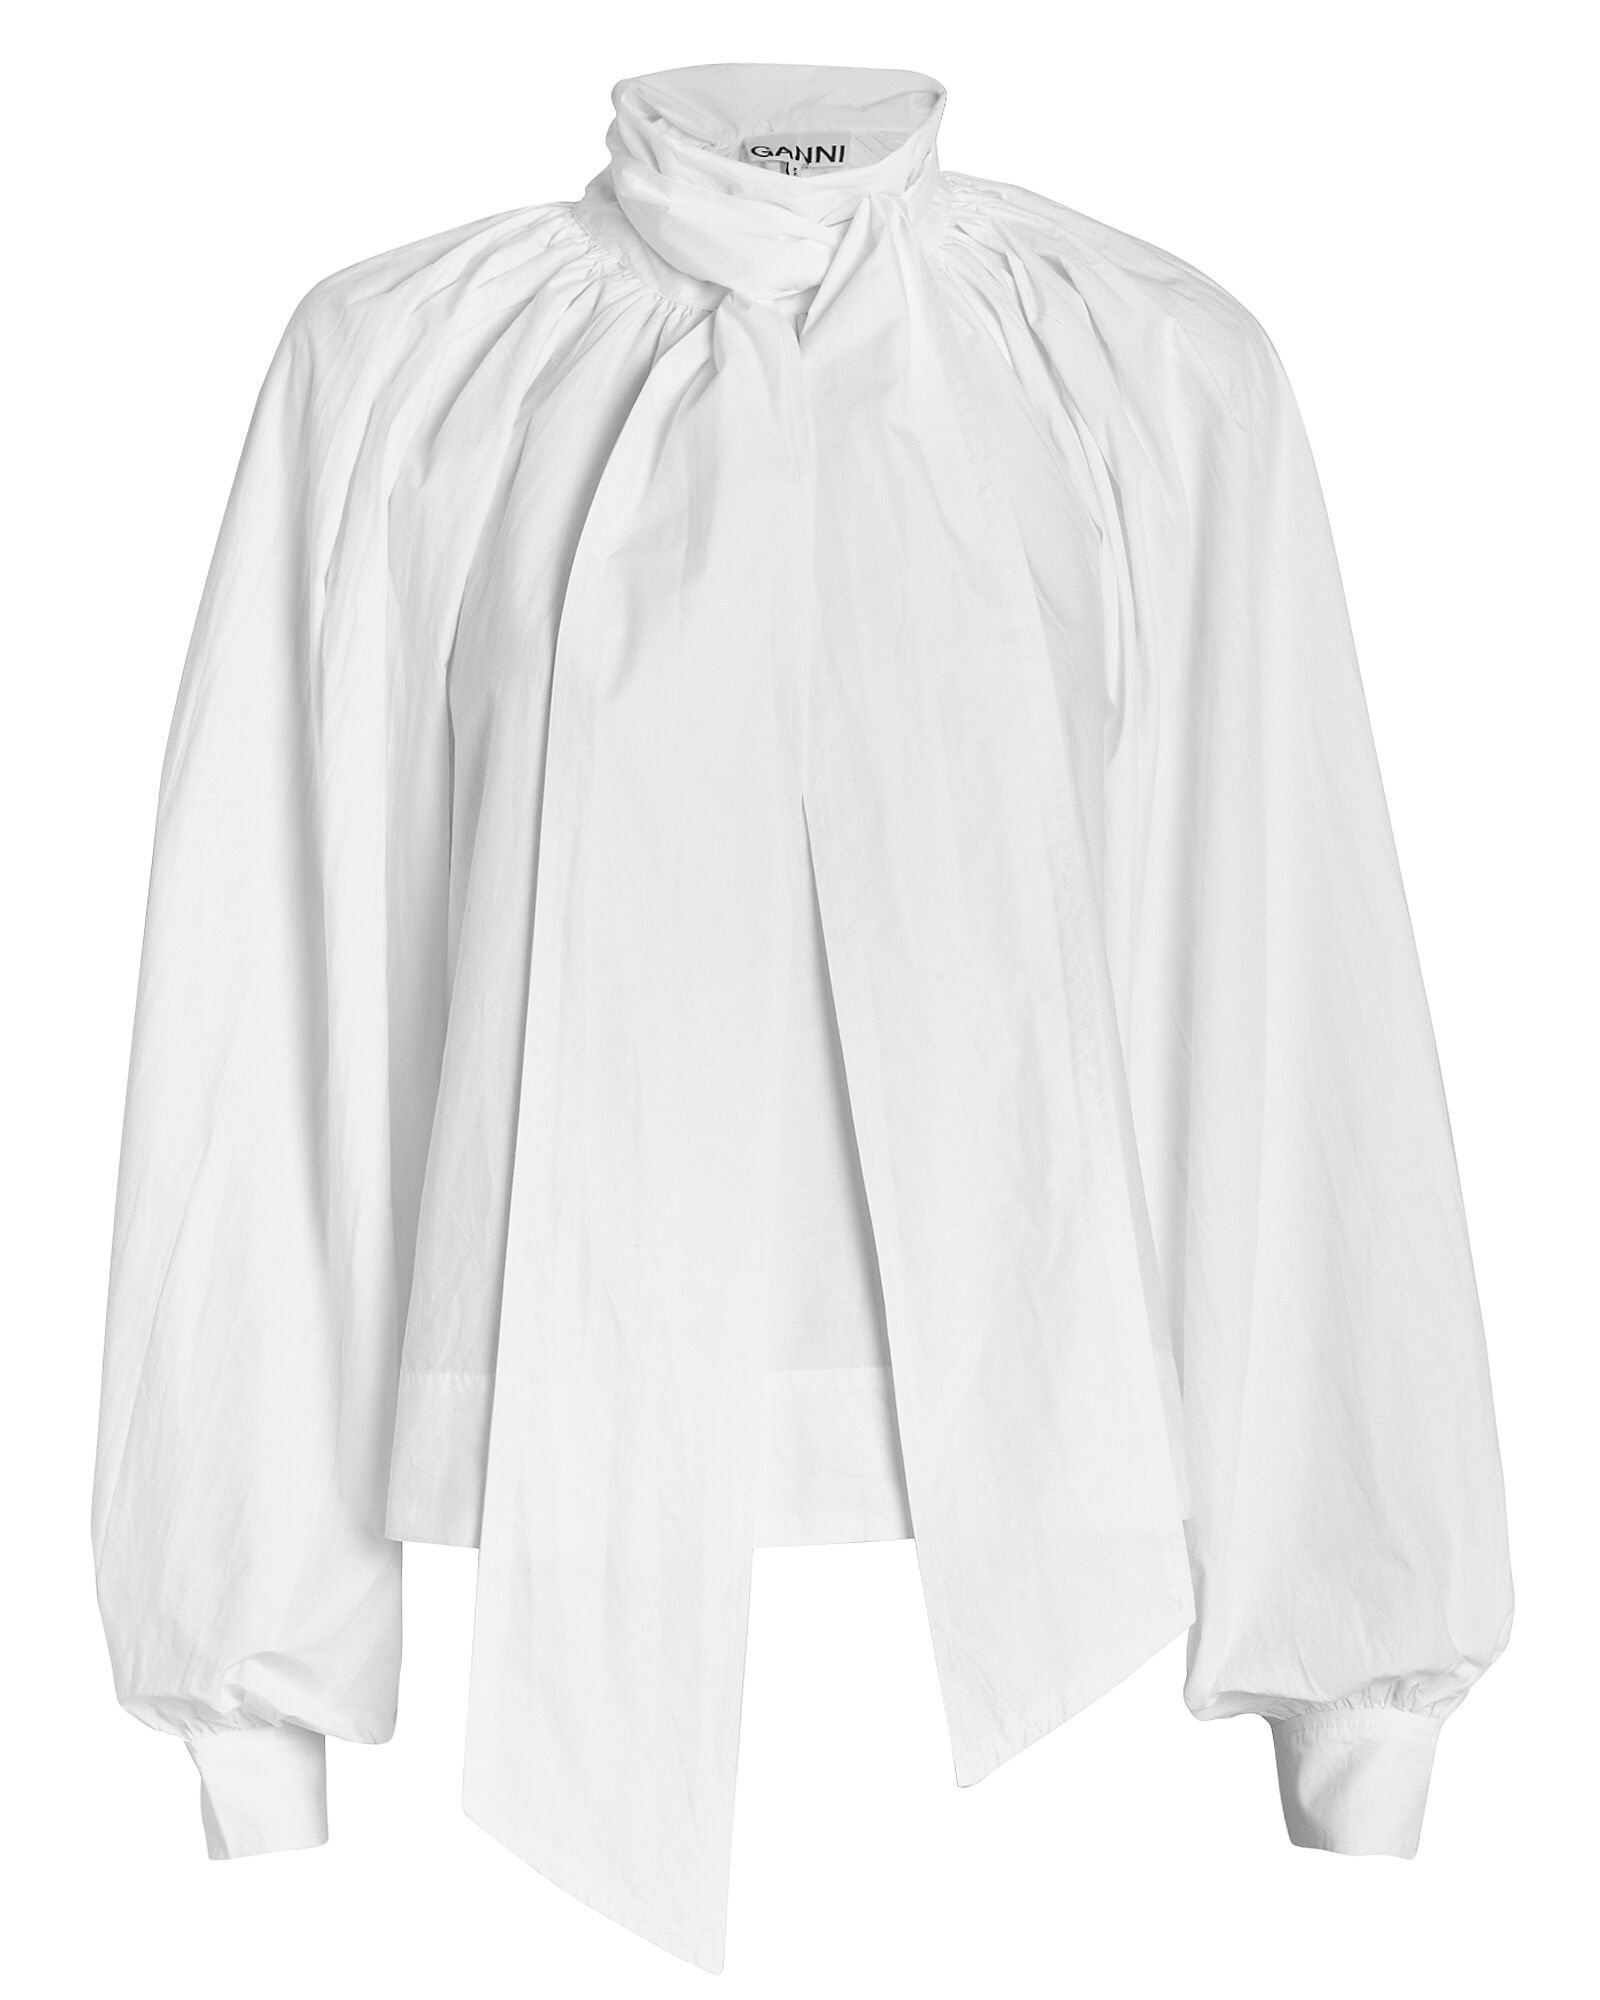 Cotton Poplin Tie Neck Blouse, WHITE, hi-res